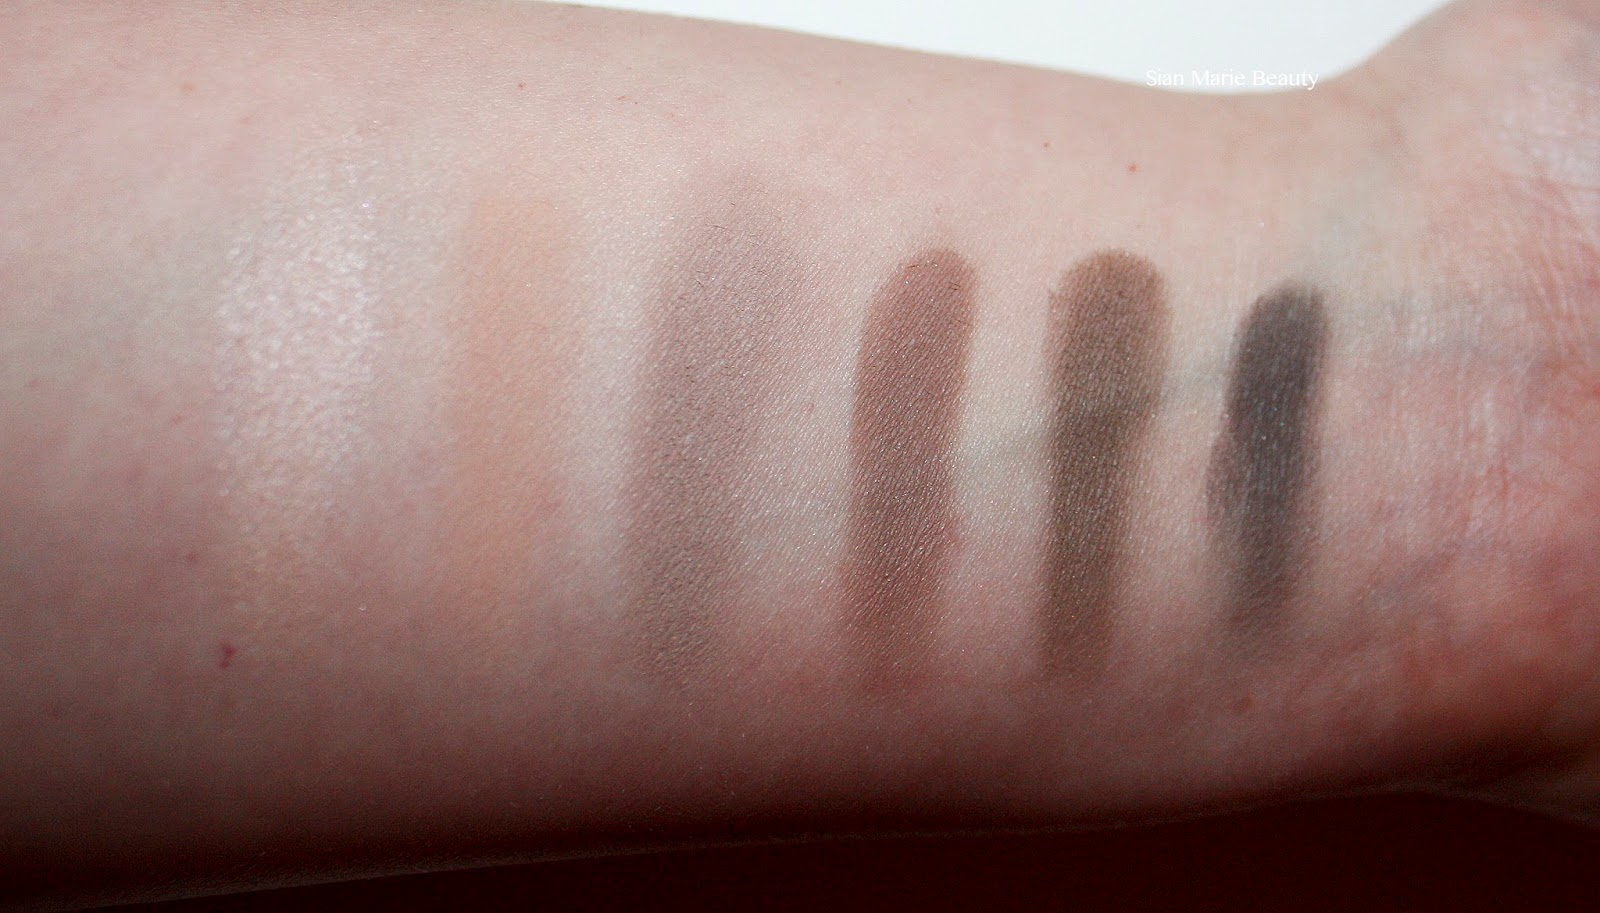 Urban Decay Naked Basics 2 Eyeshadow Palette Review